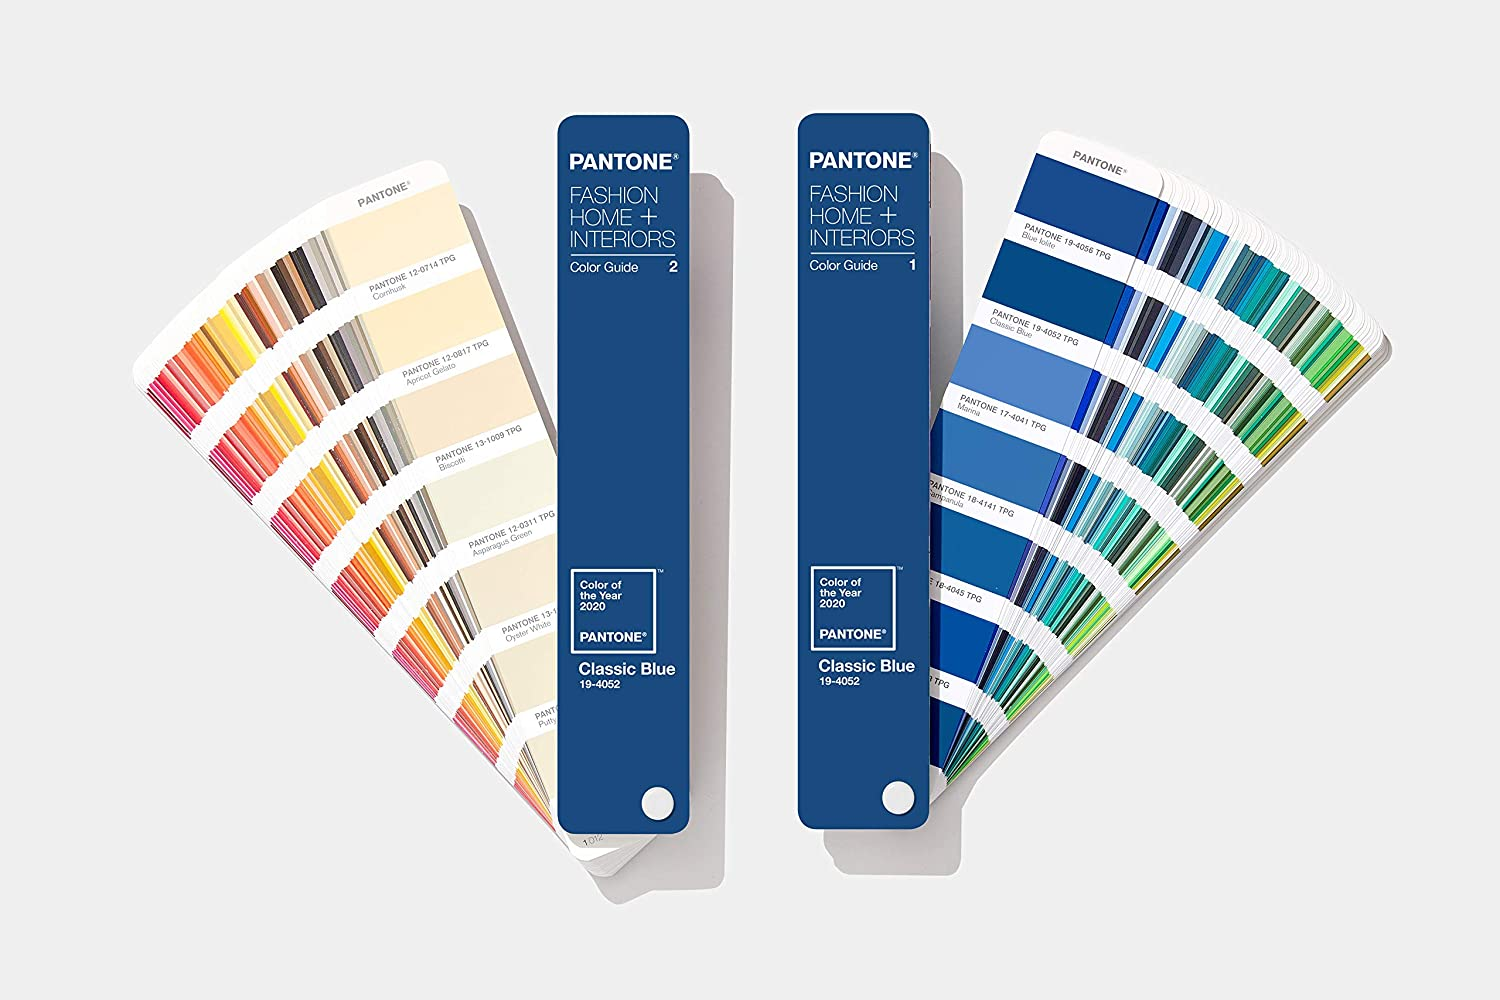 Pantone FHIP110COY20 FHI Color Guide – Home + Interiors 2020 Limited Edition Color of The Year Guide - Classic Blue